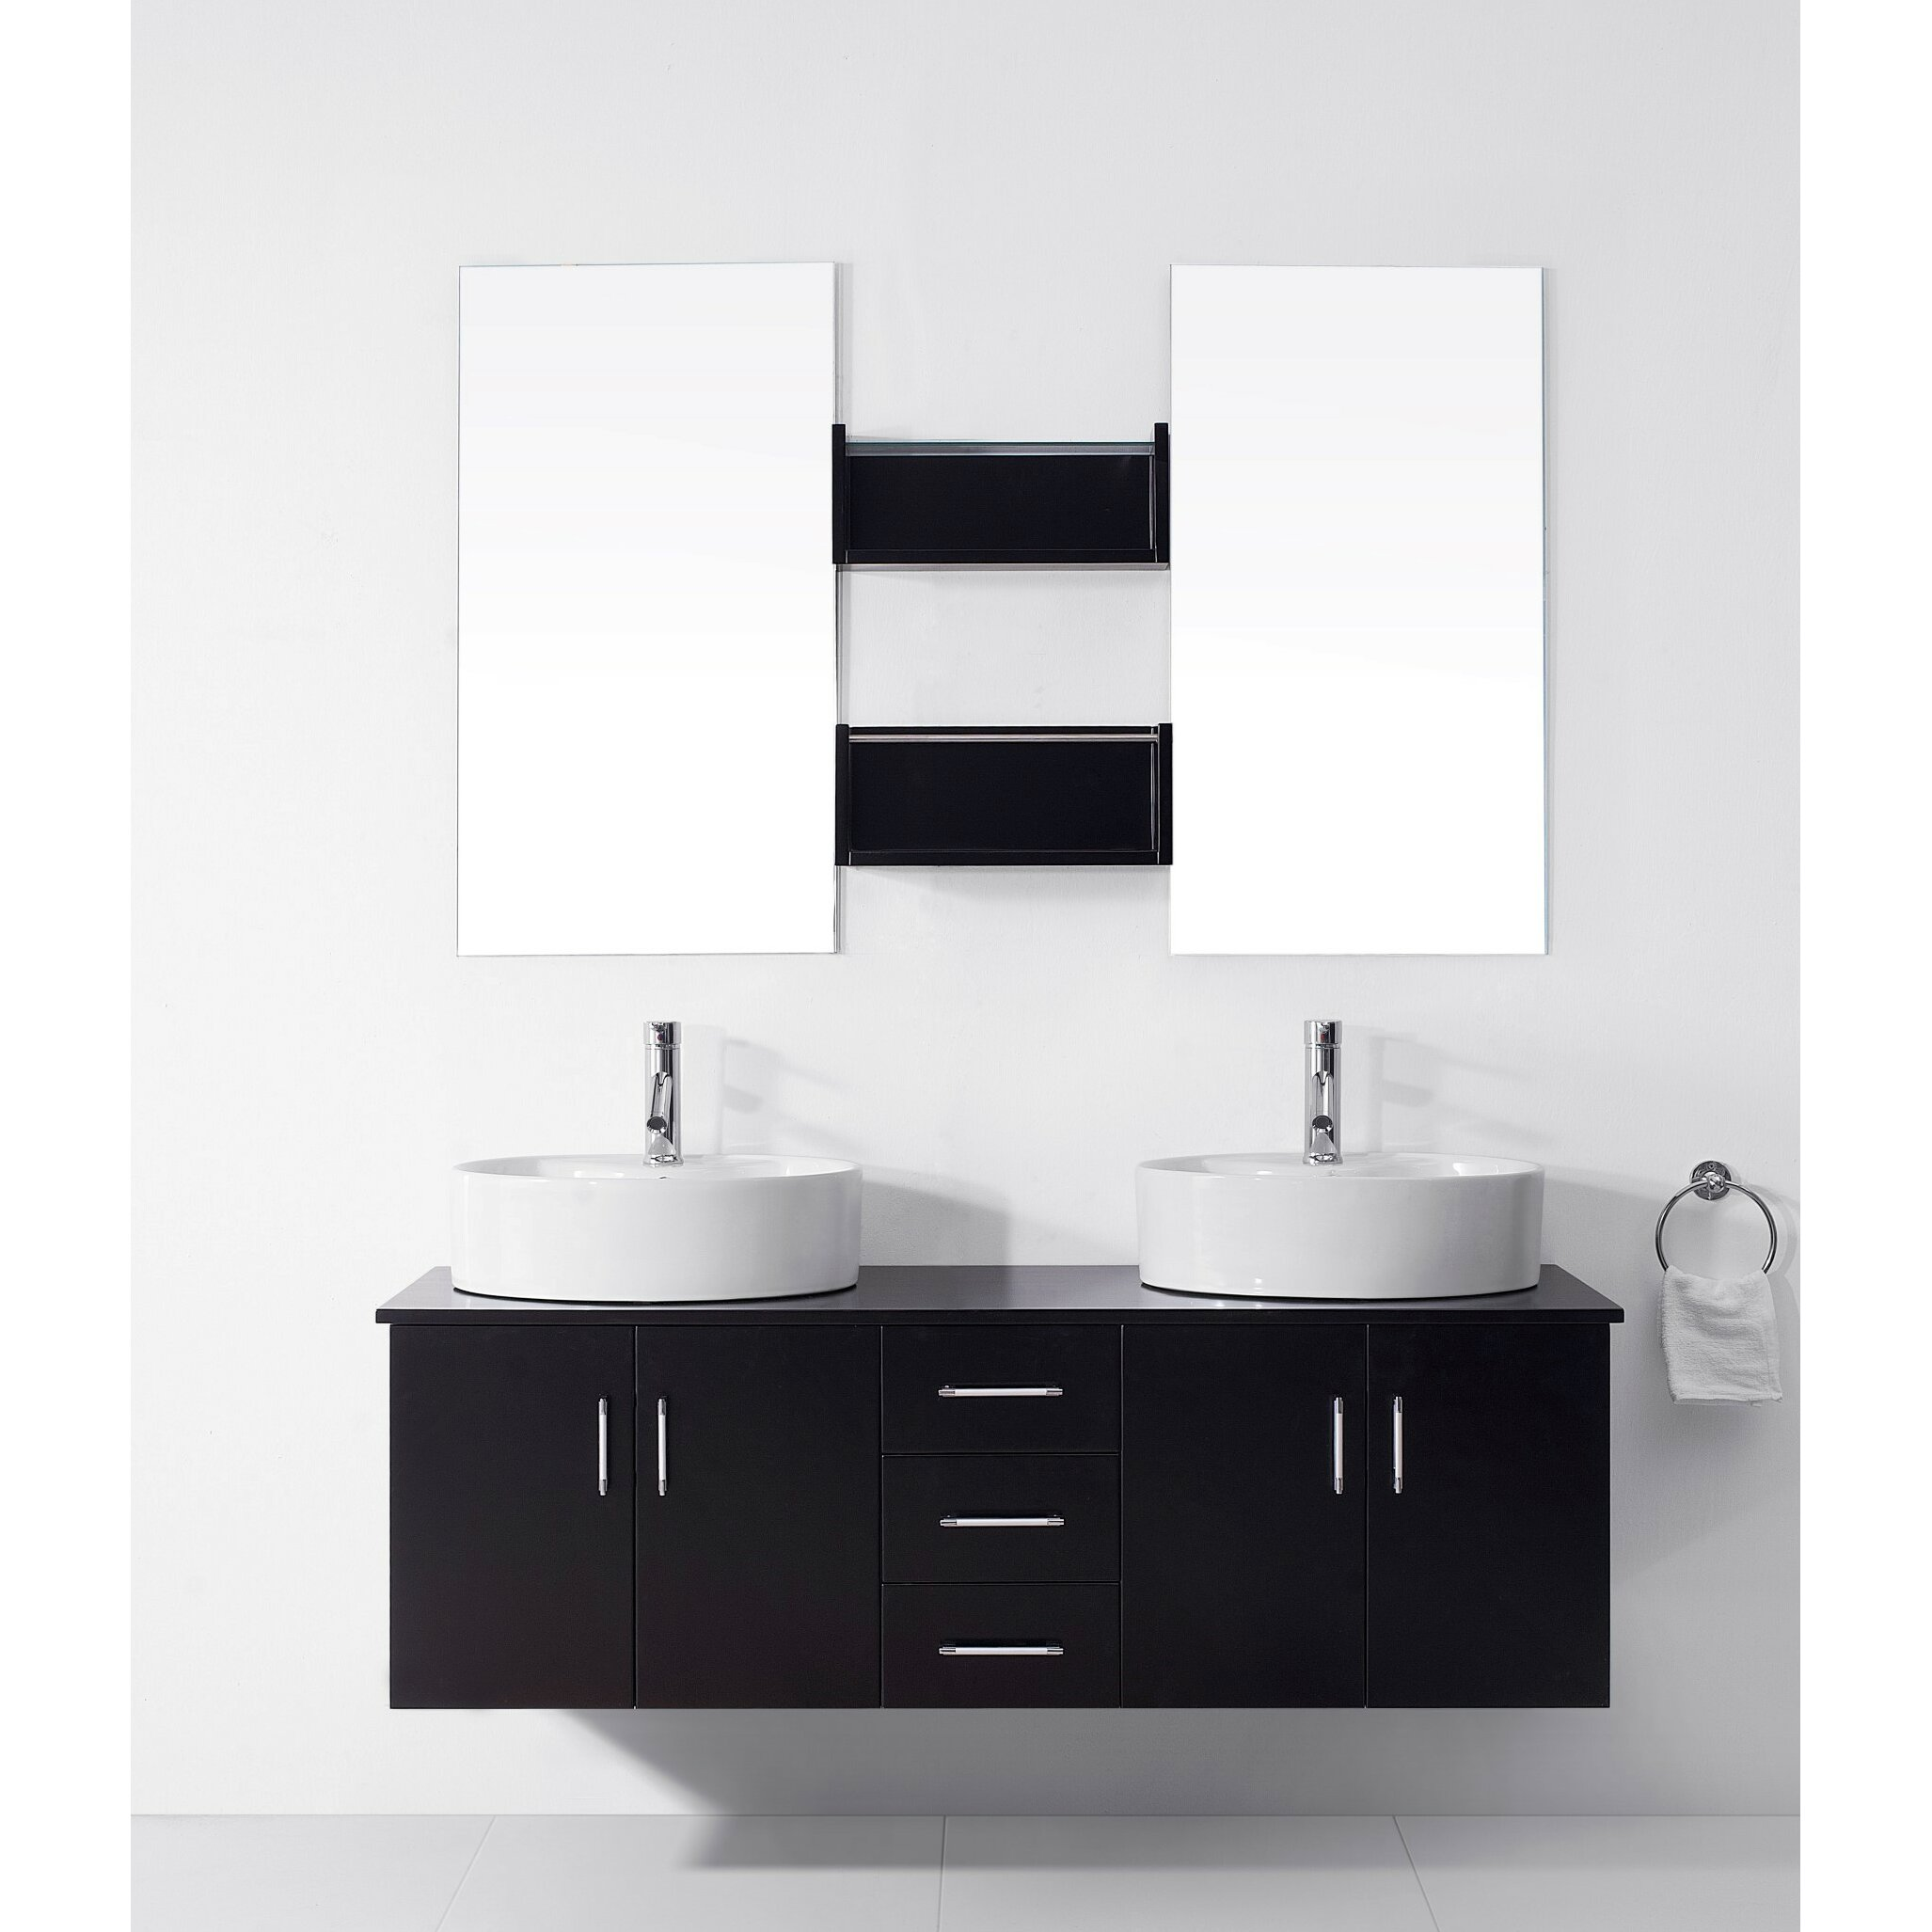 Elegant Italian Bathroom Brand Fir Italia Introduces A New Way To Shower With These Ultra Modern Bathroom Ideas This Shower  Of Bathrooms Suites  Contemporary White Vanities And Countertops Complemented By Illuminated Mirrors, Ceiling